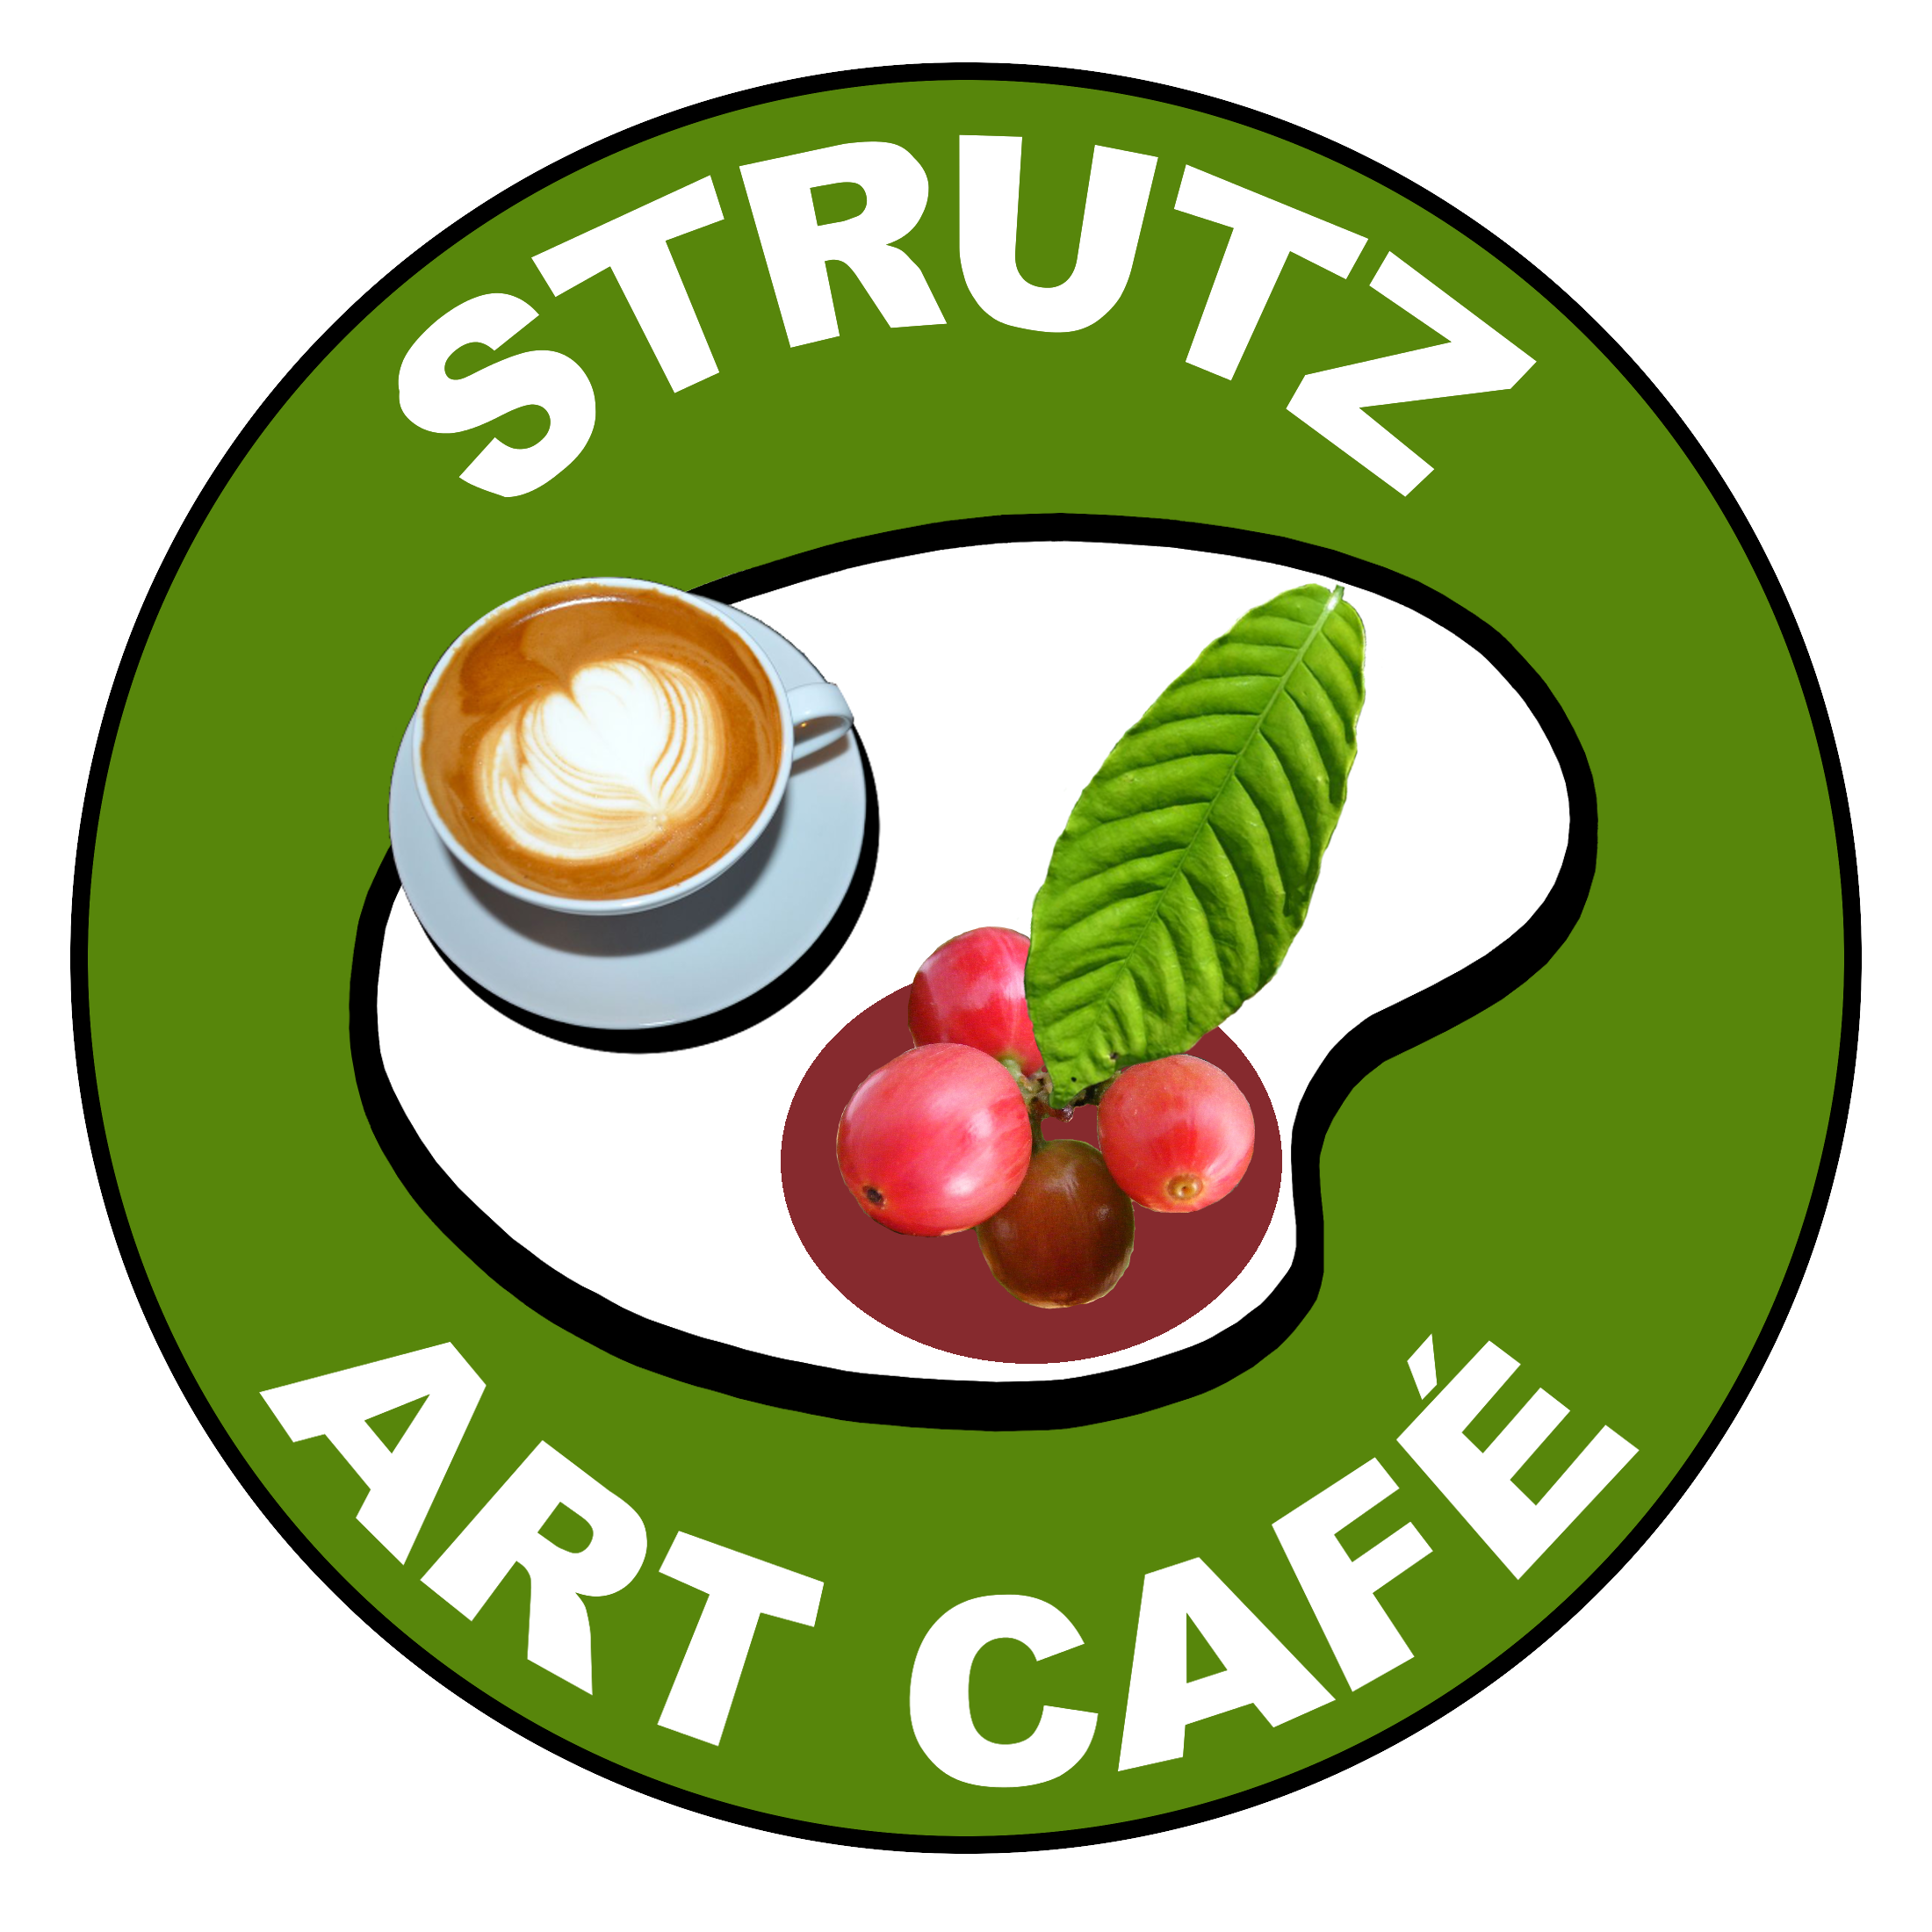 Logo Design Strutz Art Cafe PNG v2